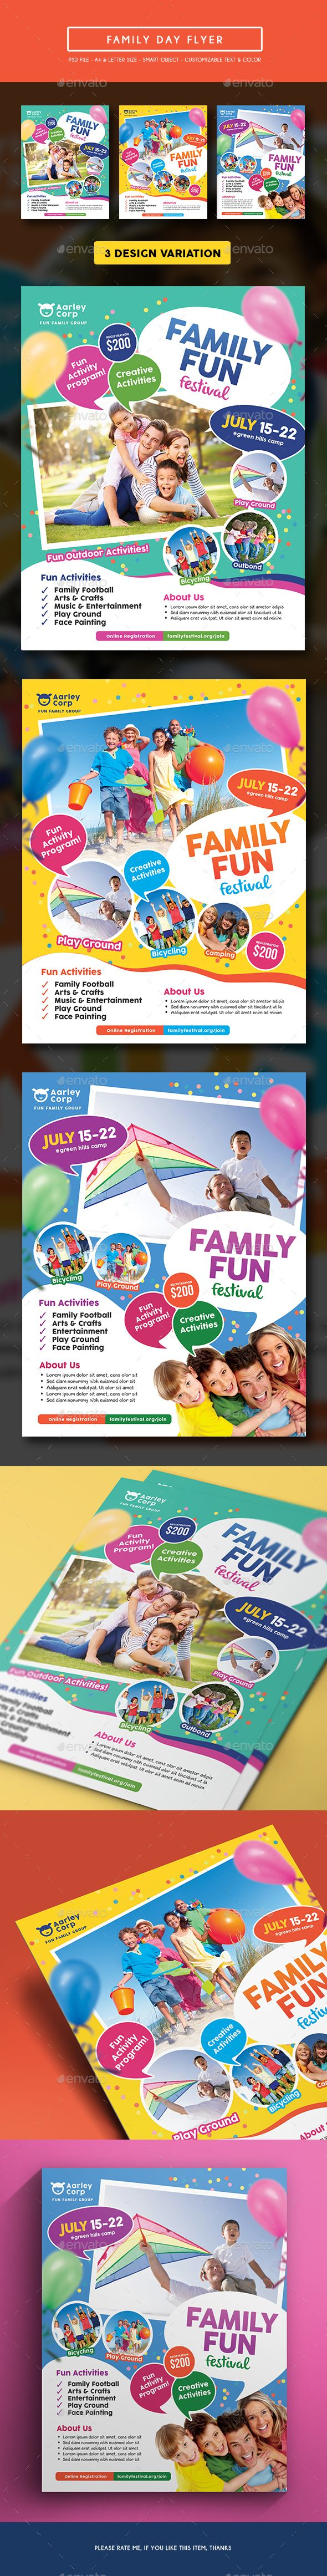 Family Day Flyer Template PSD. Download here: http://graphicriver.net/item/family-day-flyer/15723690?ref=ksioks